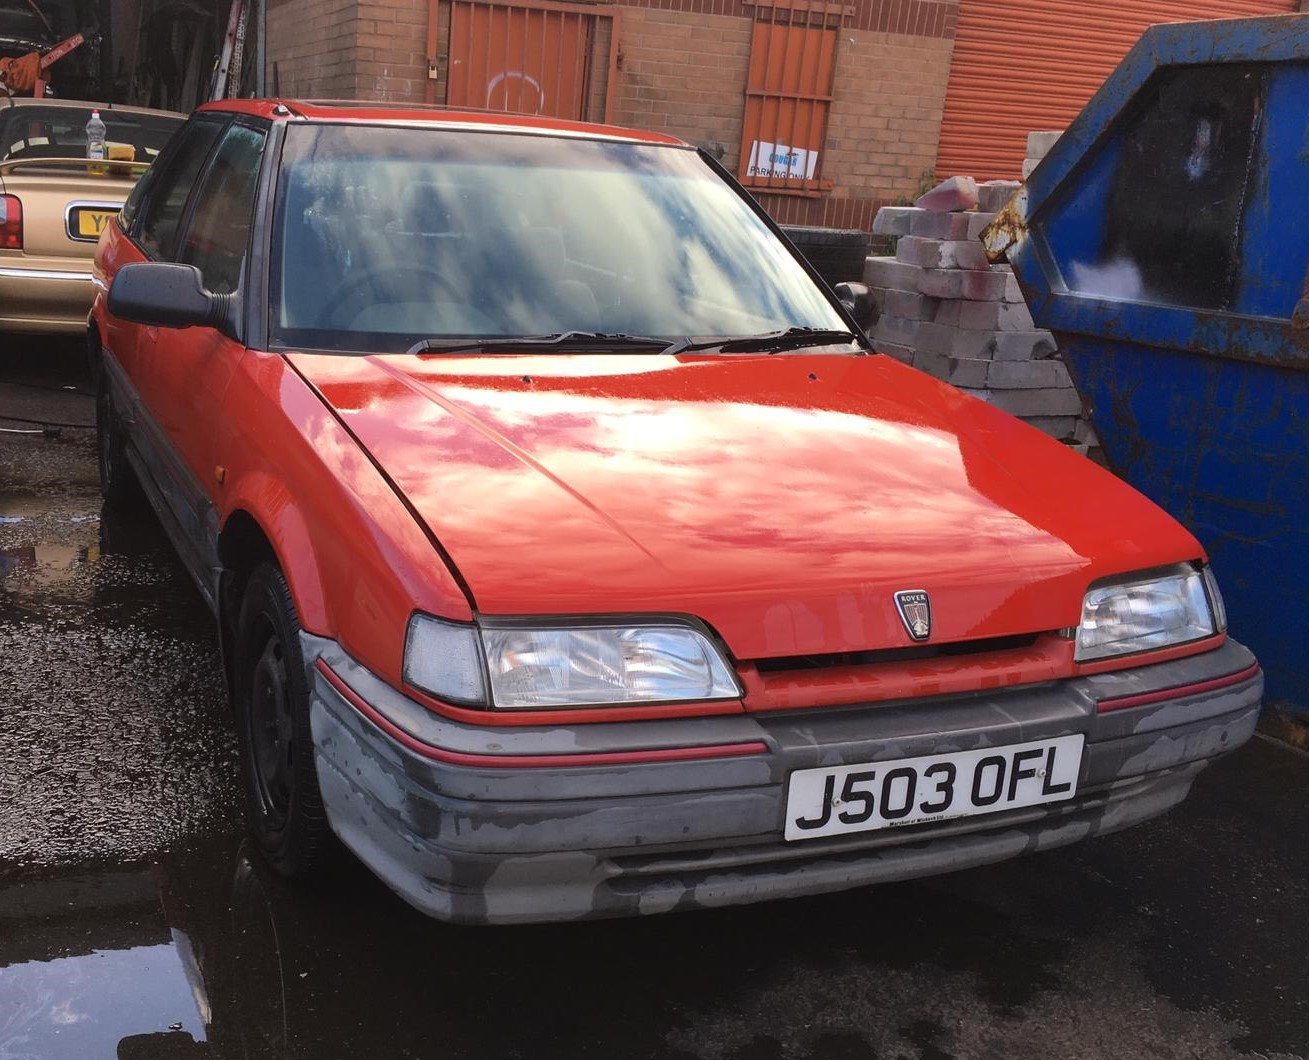 1992 Rover 216GSi Auto with Honda D-series 1.6 petrol engine For Sale (picture 1 of 6)